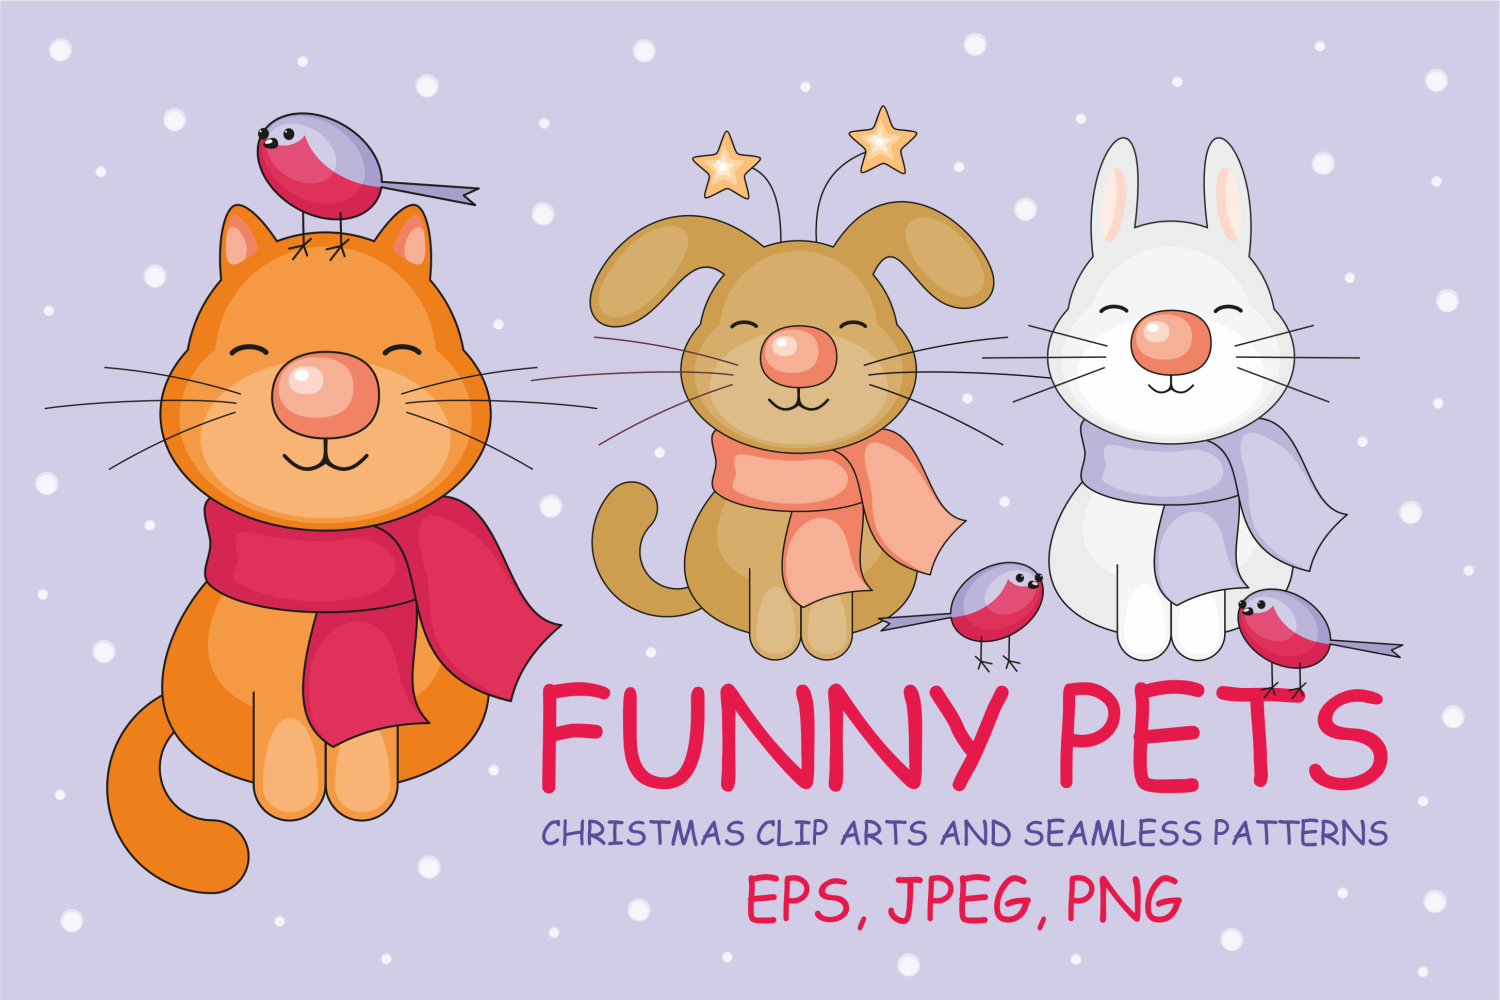 Funny pets. Christmas clip arts and seamless patterns. example image 1